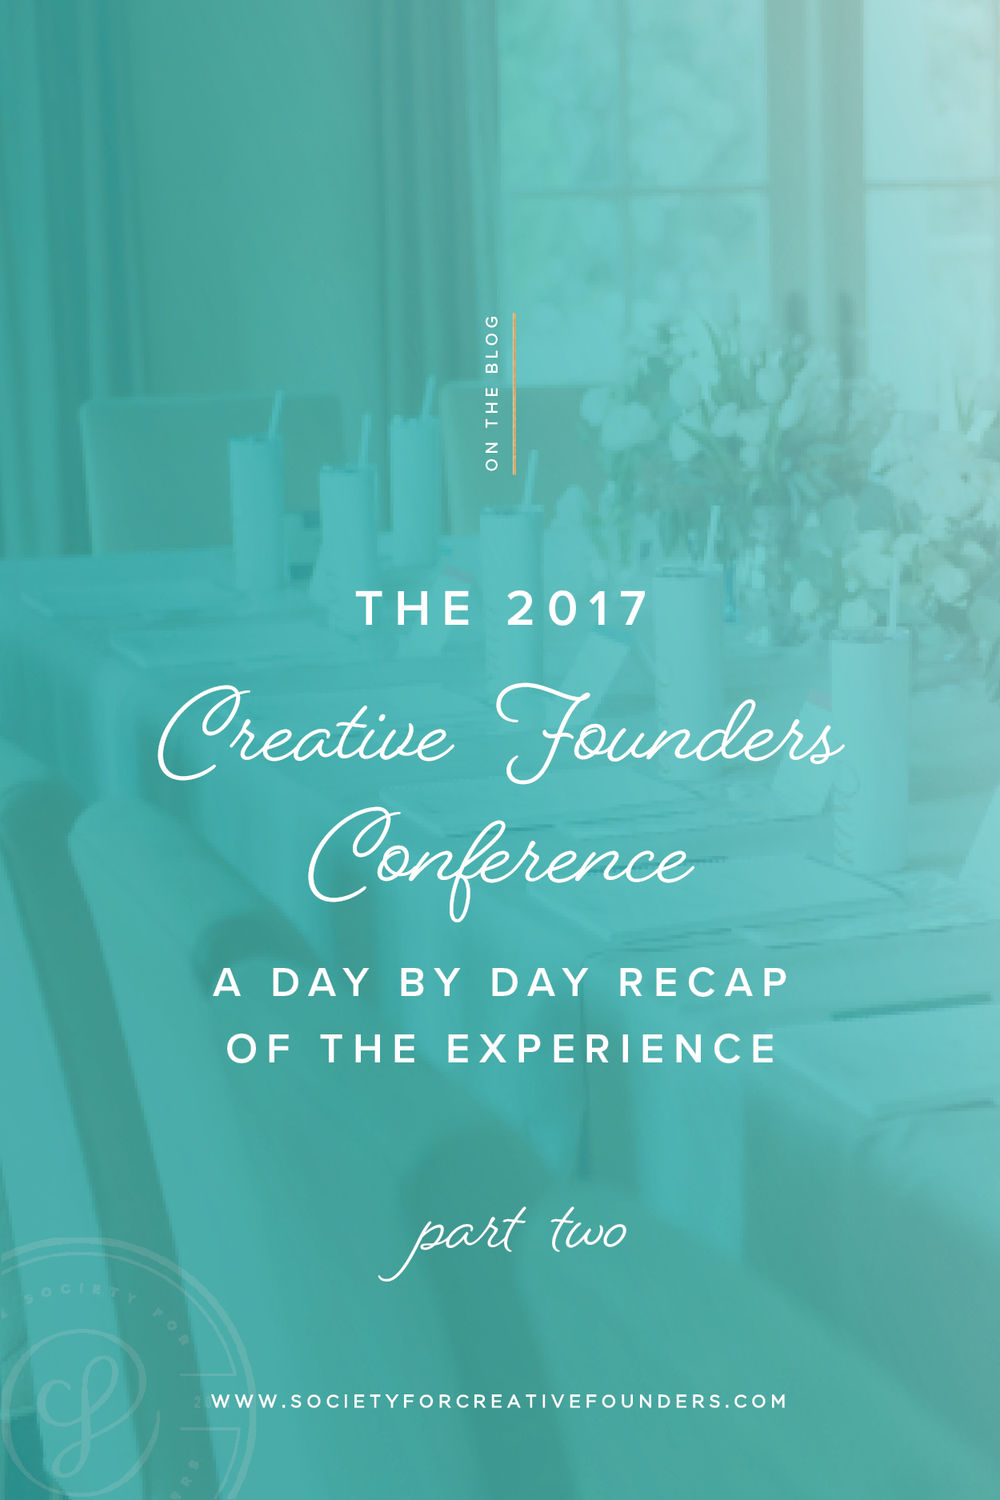 Society for Creative Founders 2017 Conference Recap - Day 2